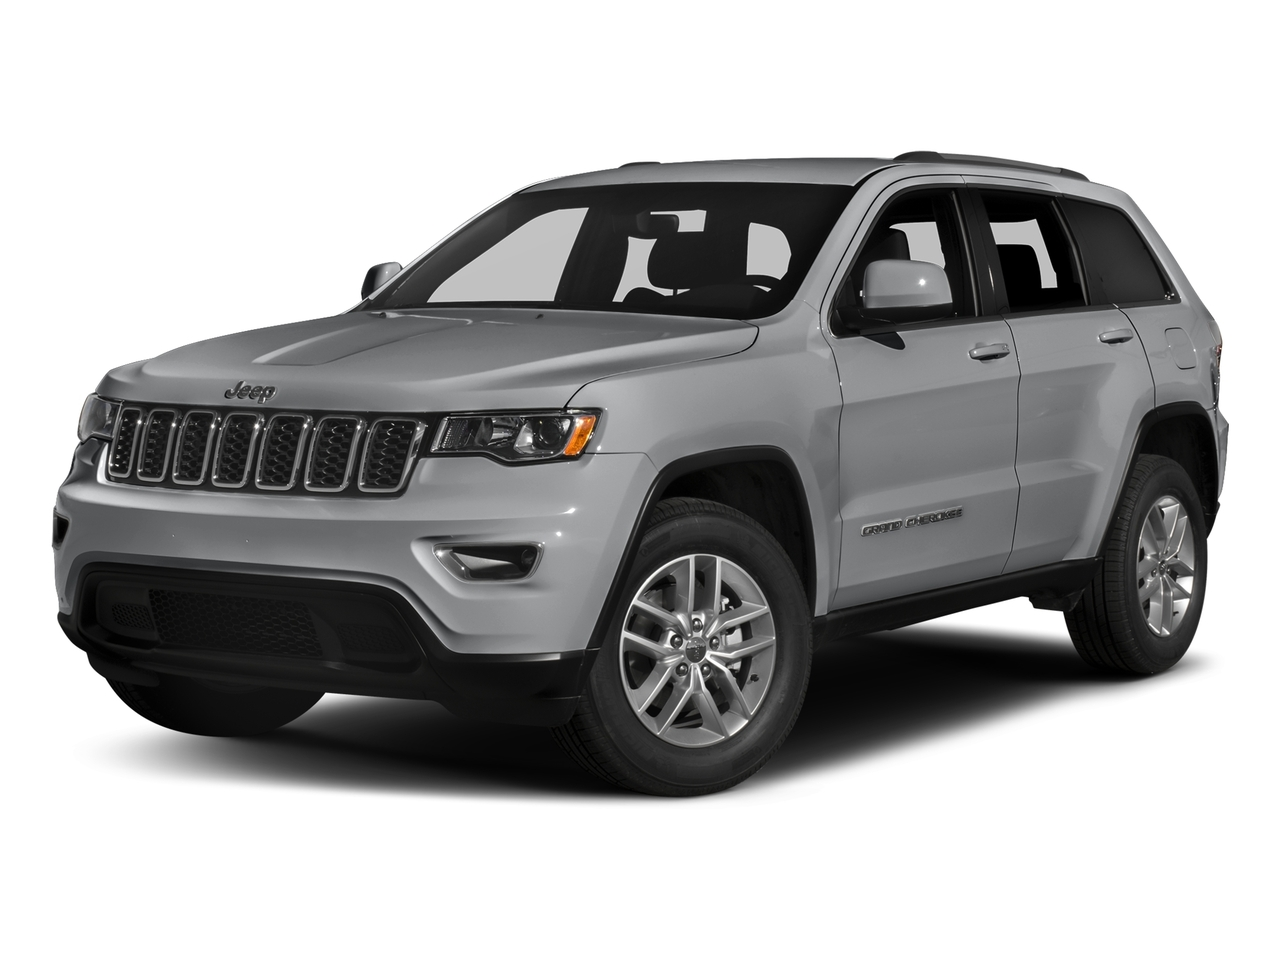 2017 Jeep Grand Cherokee ALTITUDE SUV Slide